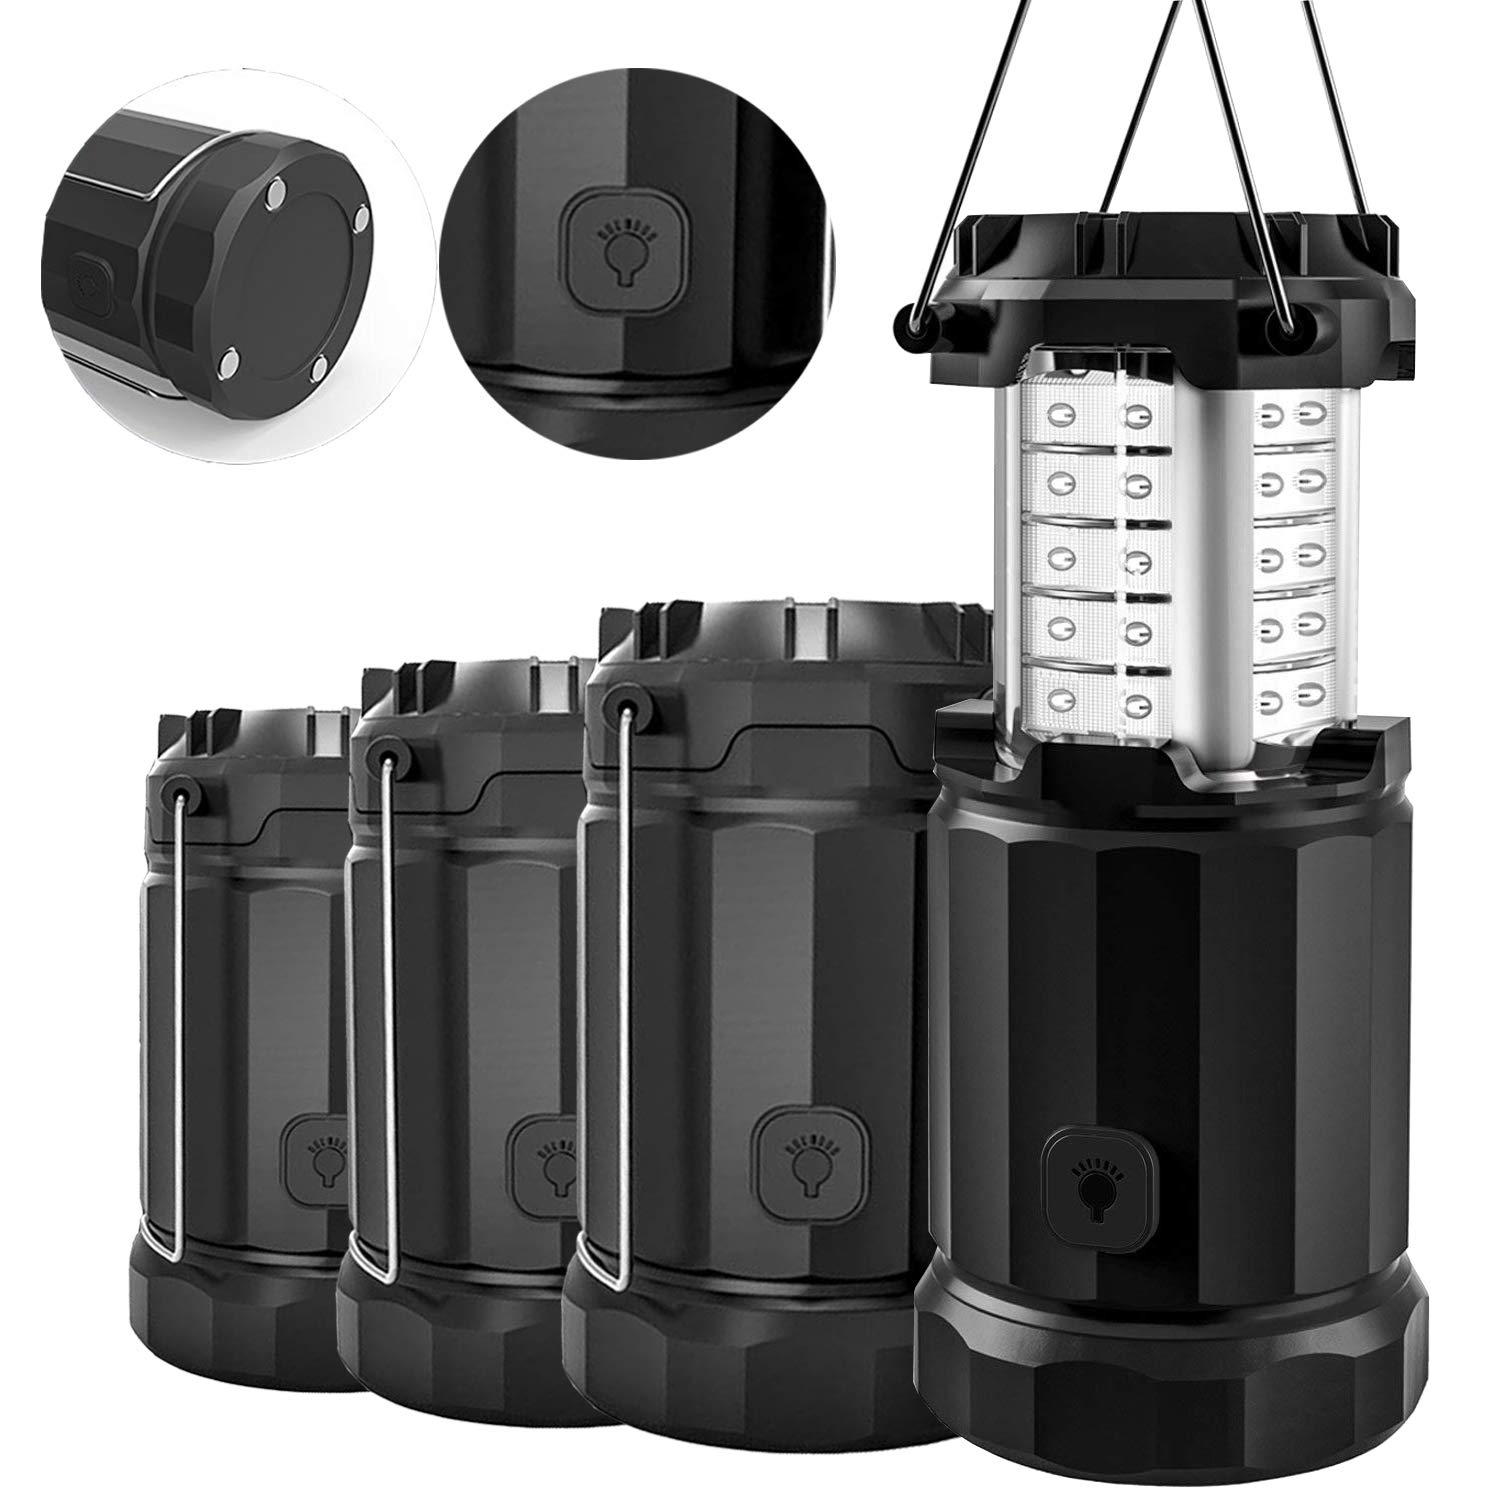 Etekcity 4 Pack LED Lantern Camping Portable Flashlights with AA Batteries, Upgraded Magnetic Base and Dimmer Button- Collapsible Survival Lights for Emergency, Hurricane, Storm, Outage